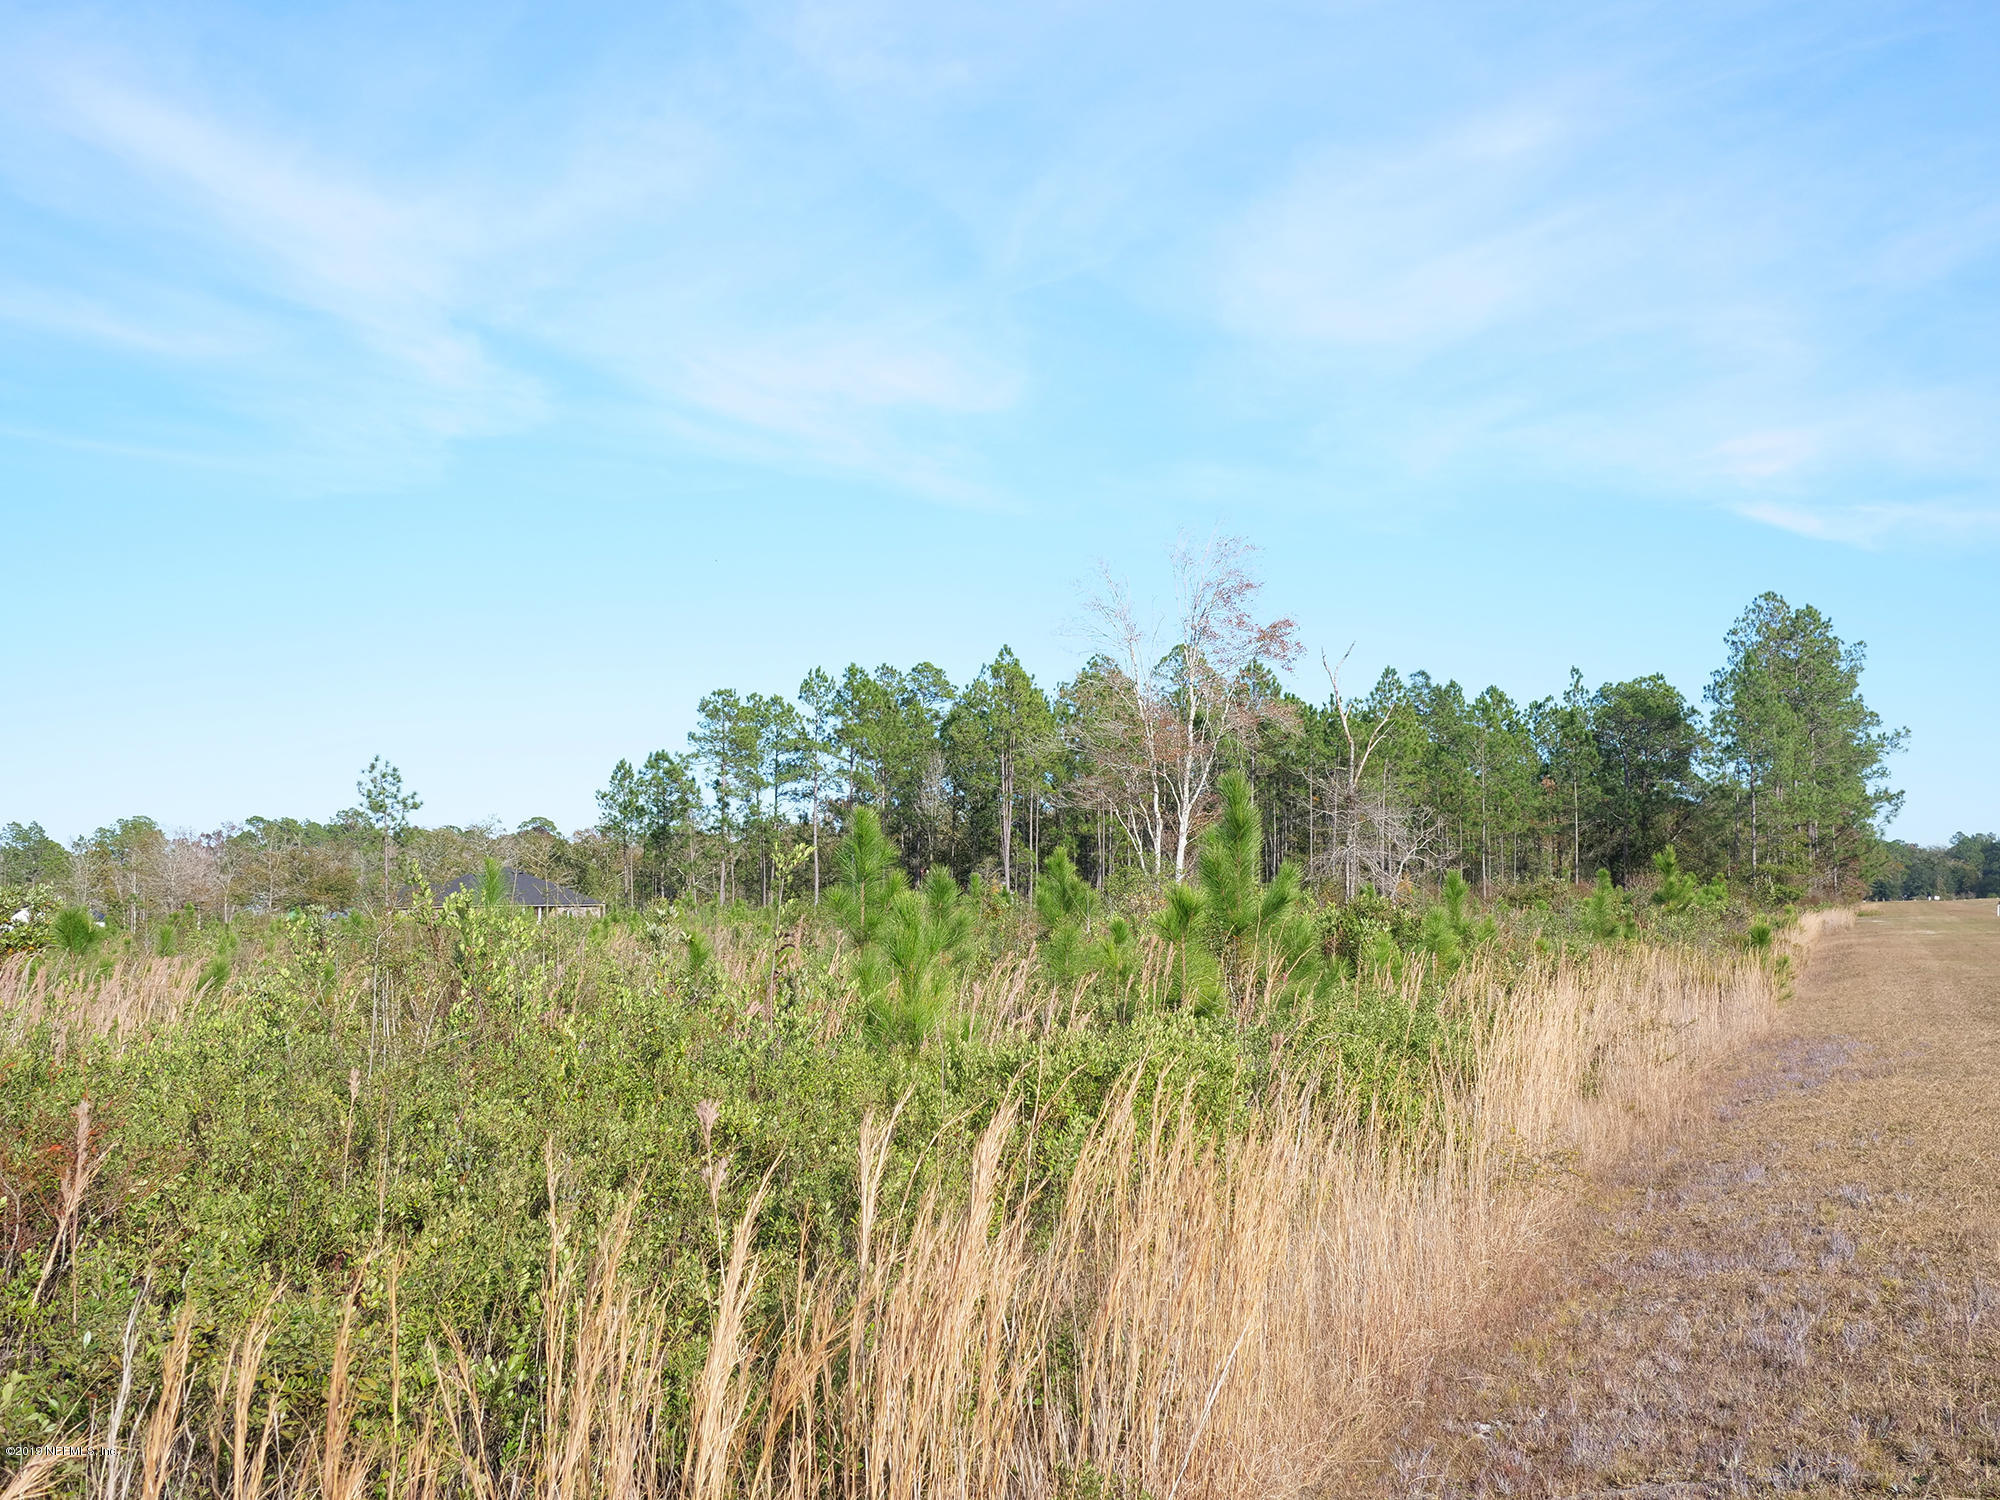 0 RUNWAY, GLEN ST. MARY, FLORIDA 32040, ,Vacant land,For sale,RUNWAY,1028201